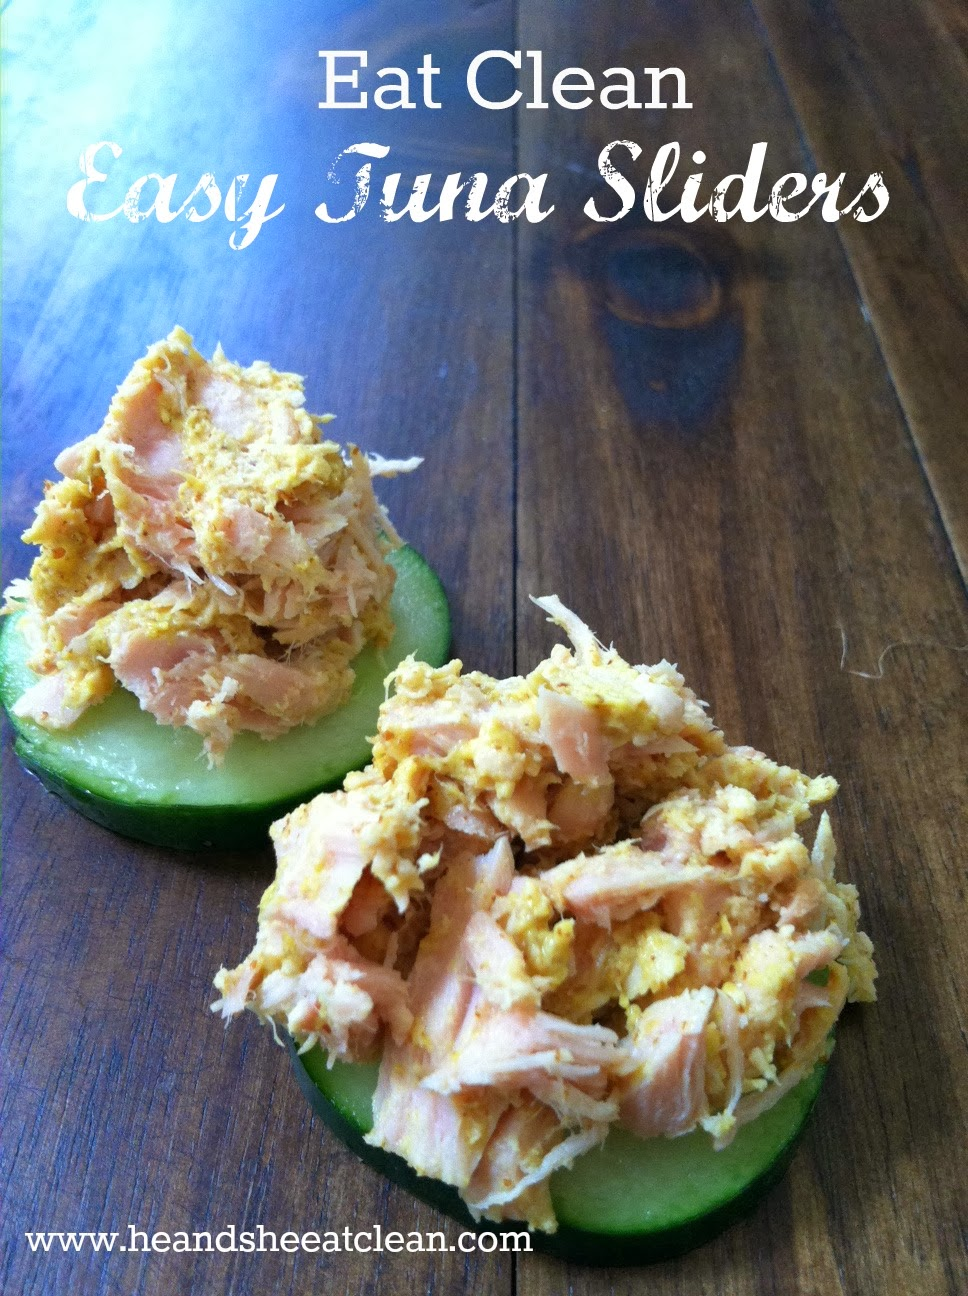 eat-clean-easy-tuna-slider-recipe-great-for-super-bowl-healthy-appetizer-protein-packed-spicy-mustard-cucumber-he-she.jpg